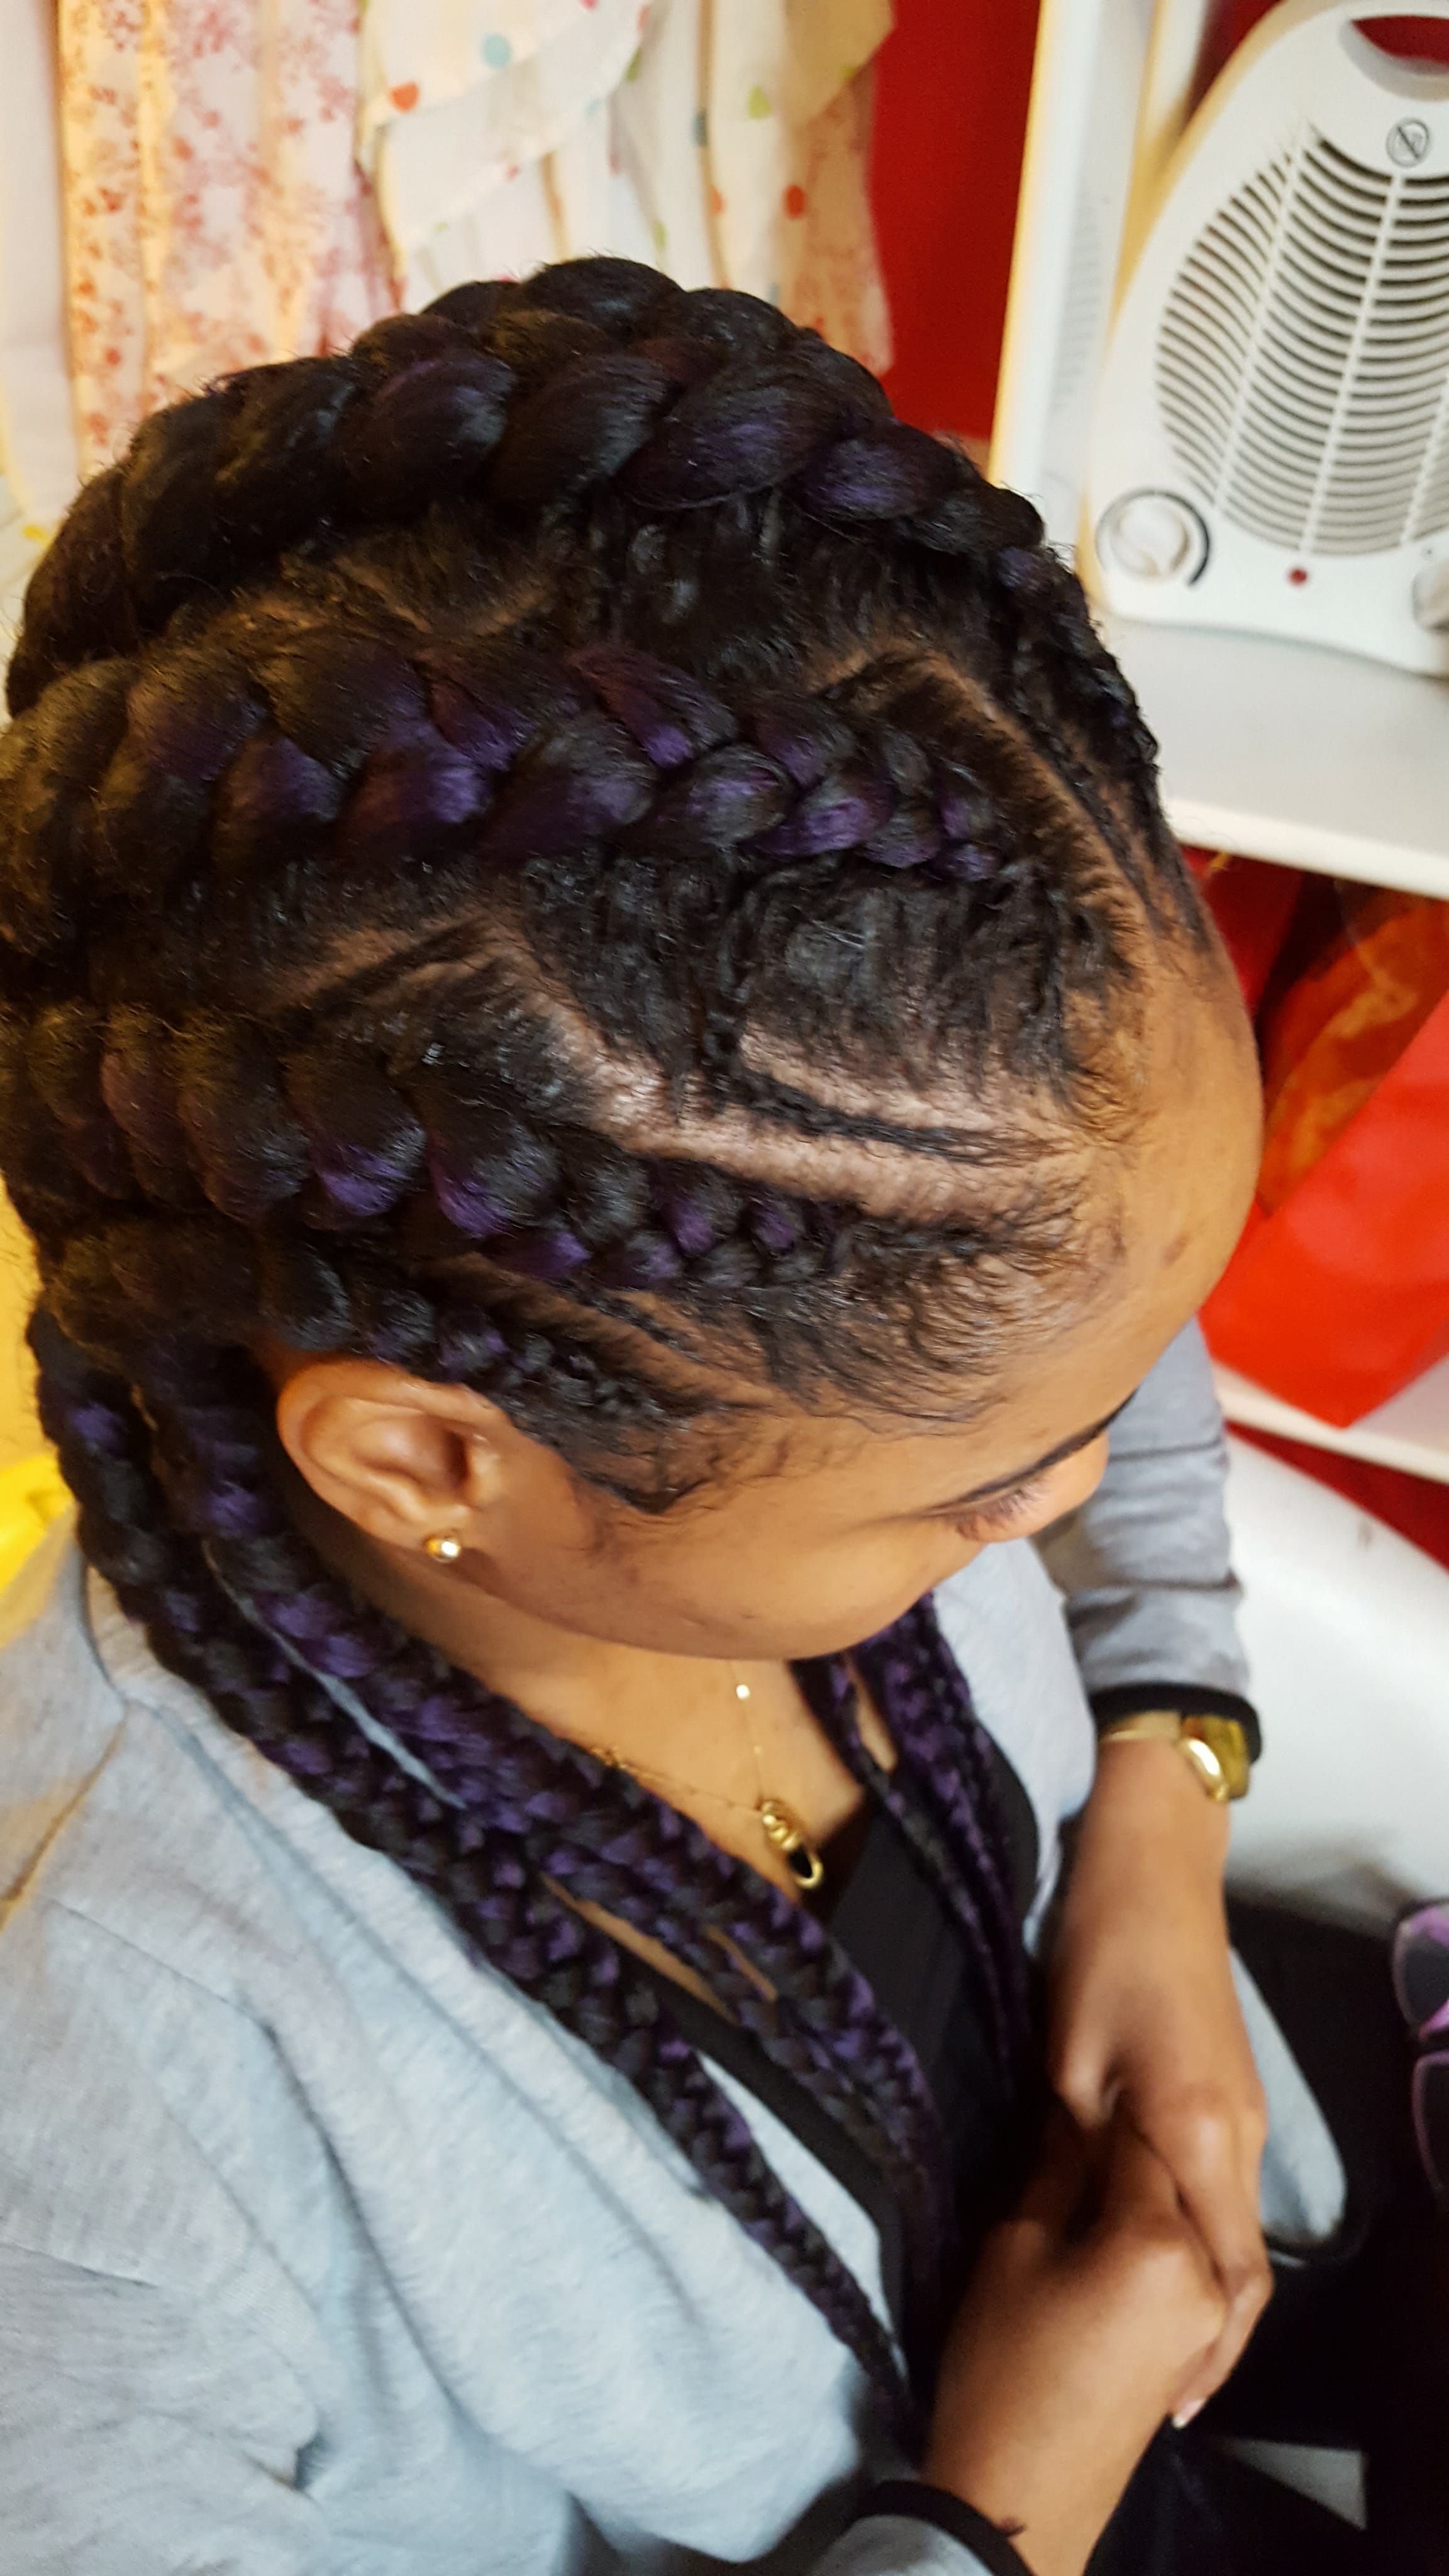 salon de coiffure afro tresse tresses box braids crochet braids vanilles tissages paris 75 77 78 91 92 93 94 95 UMVSWTBX